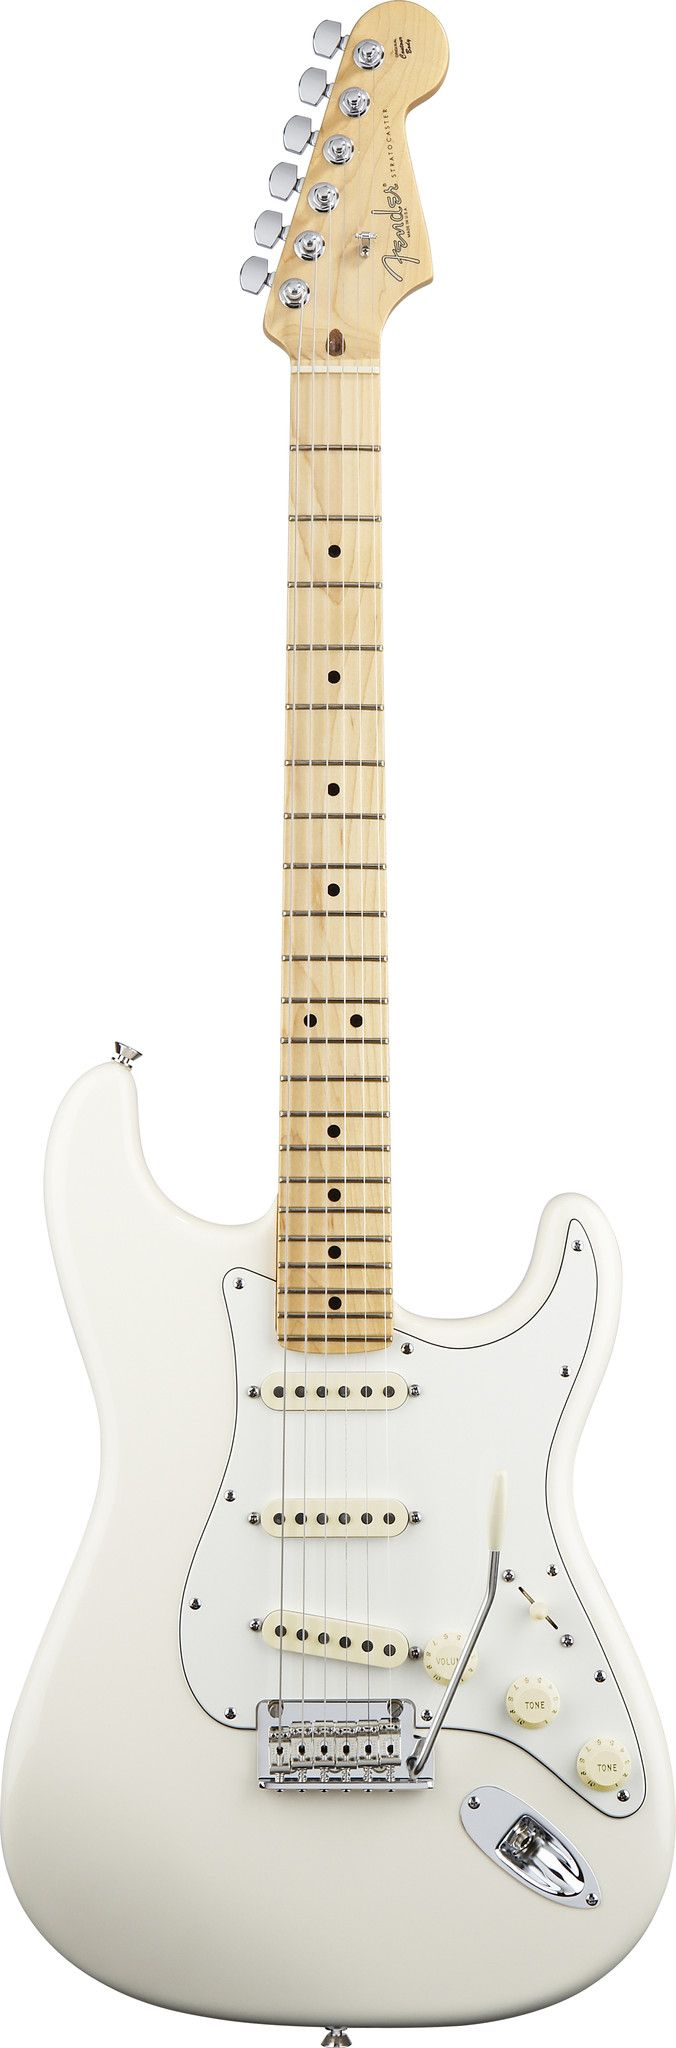 The American Standard Stratocaster® guitar is the same great best-selling, go-to model it has always been, and now it's upgraded with aged plastic parts and full-sounding Fender Custom Shop Fat '50s p